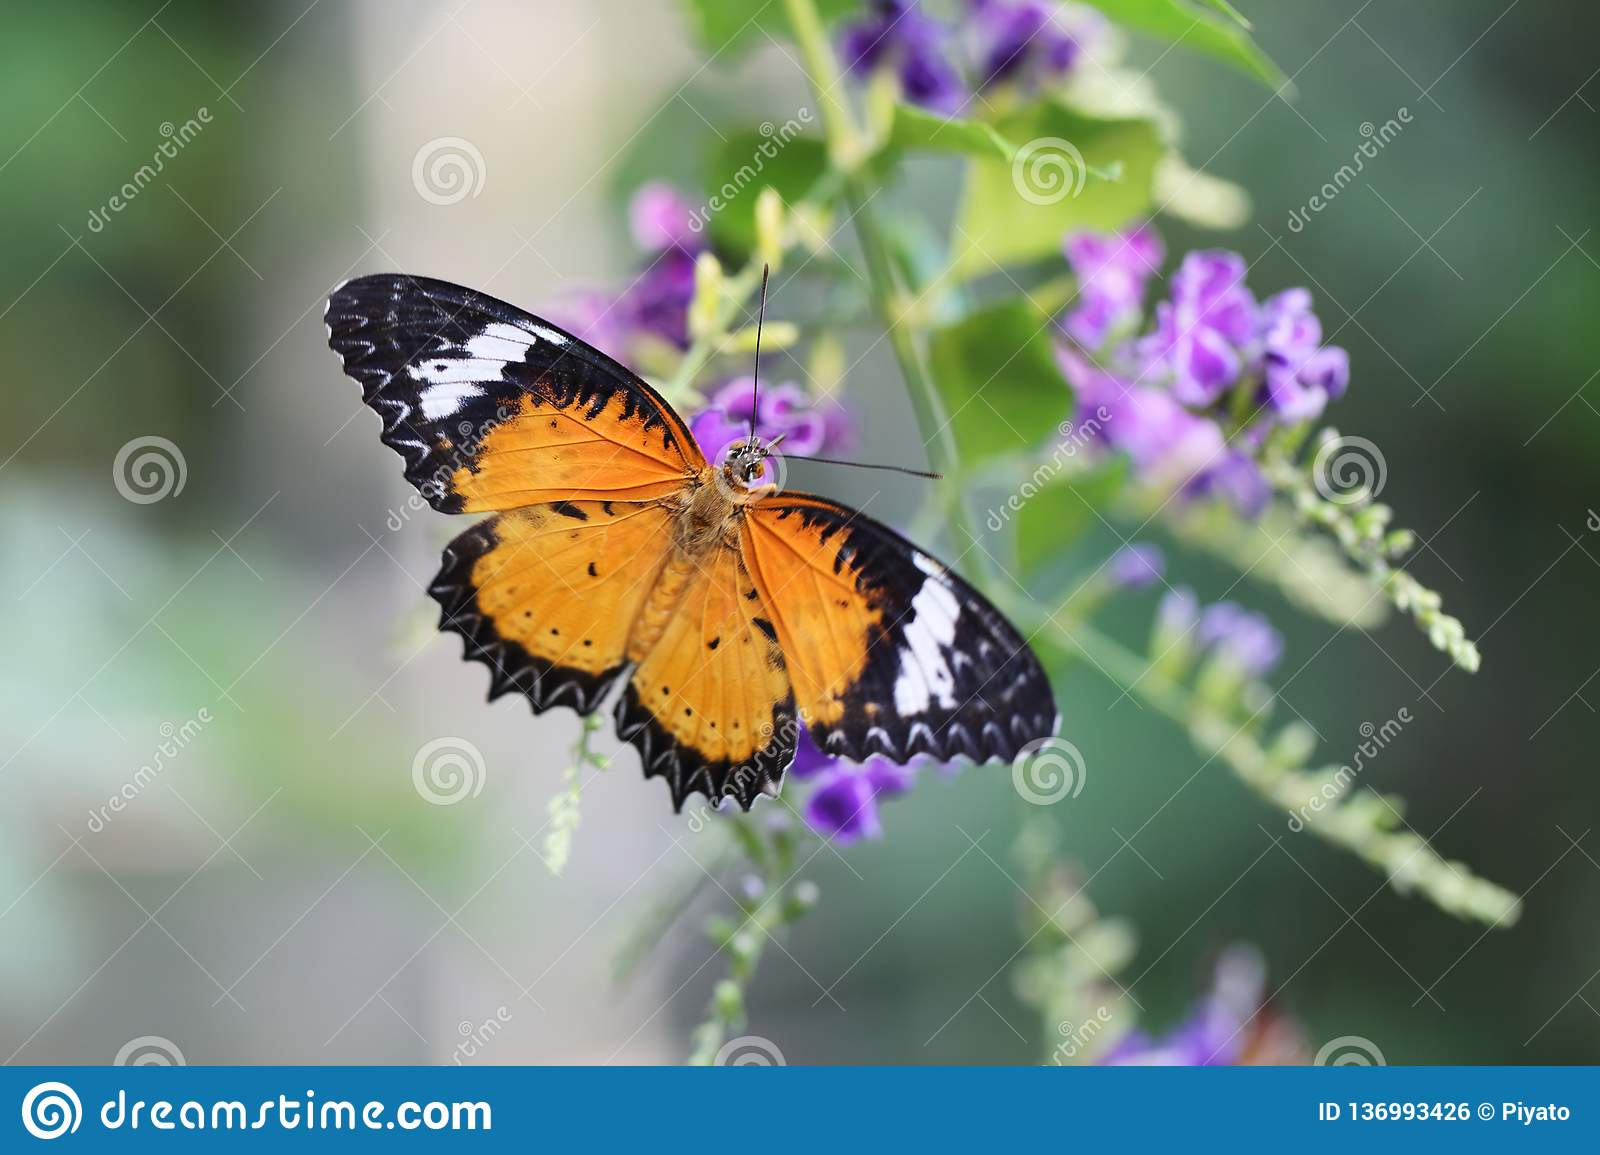 Butterfly fly in morning nature royalty free stock image